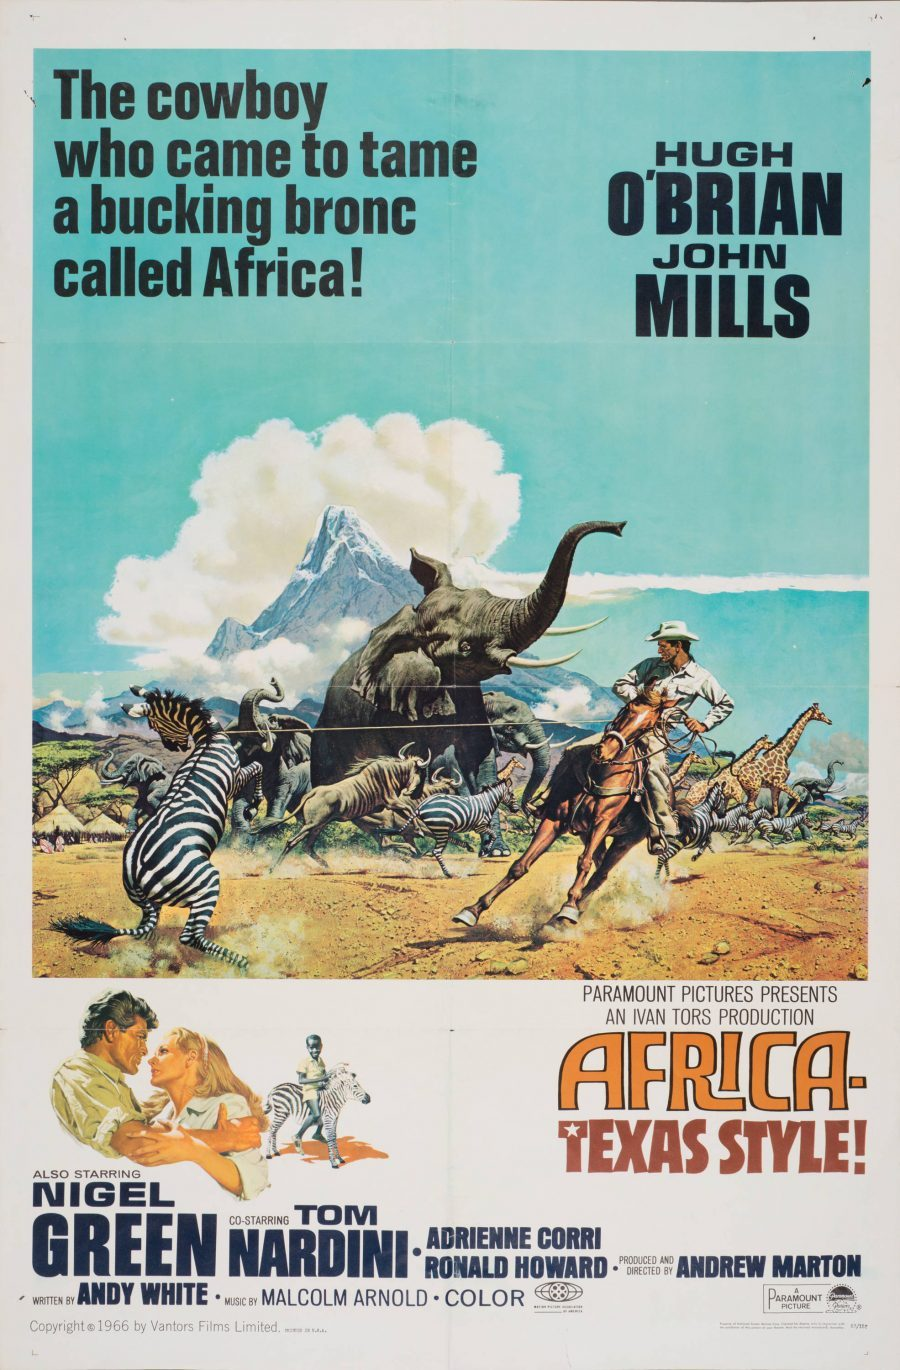 10,000 Classic Movie Posters Getting Digitized & Put Online by the Harry Ransom Center at UT-Austin: Free to Browse & Download Artes & contextos Africa Texas Style e1516348048364